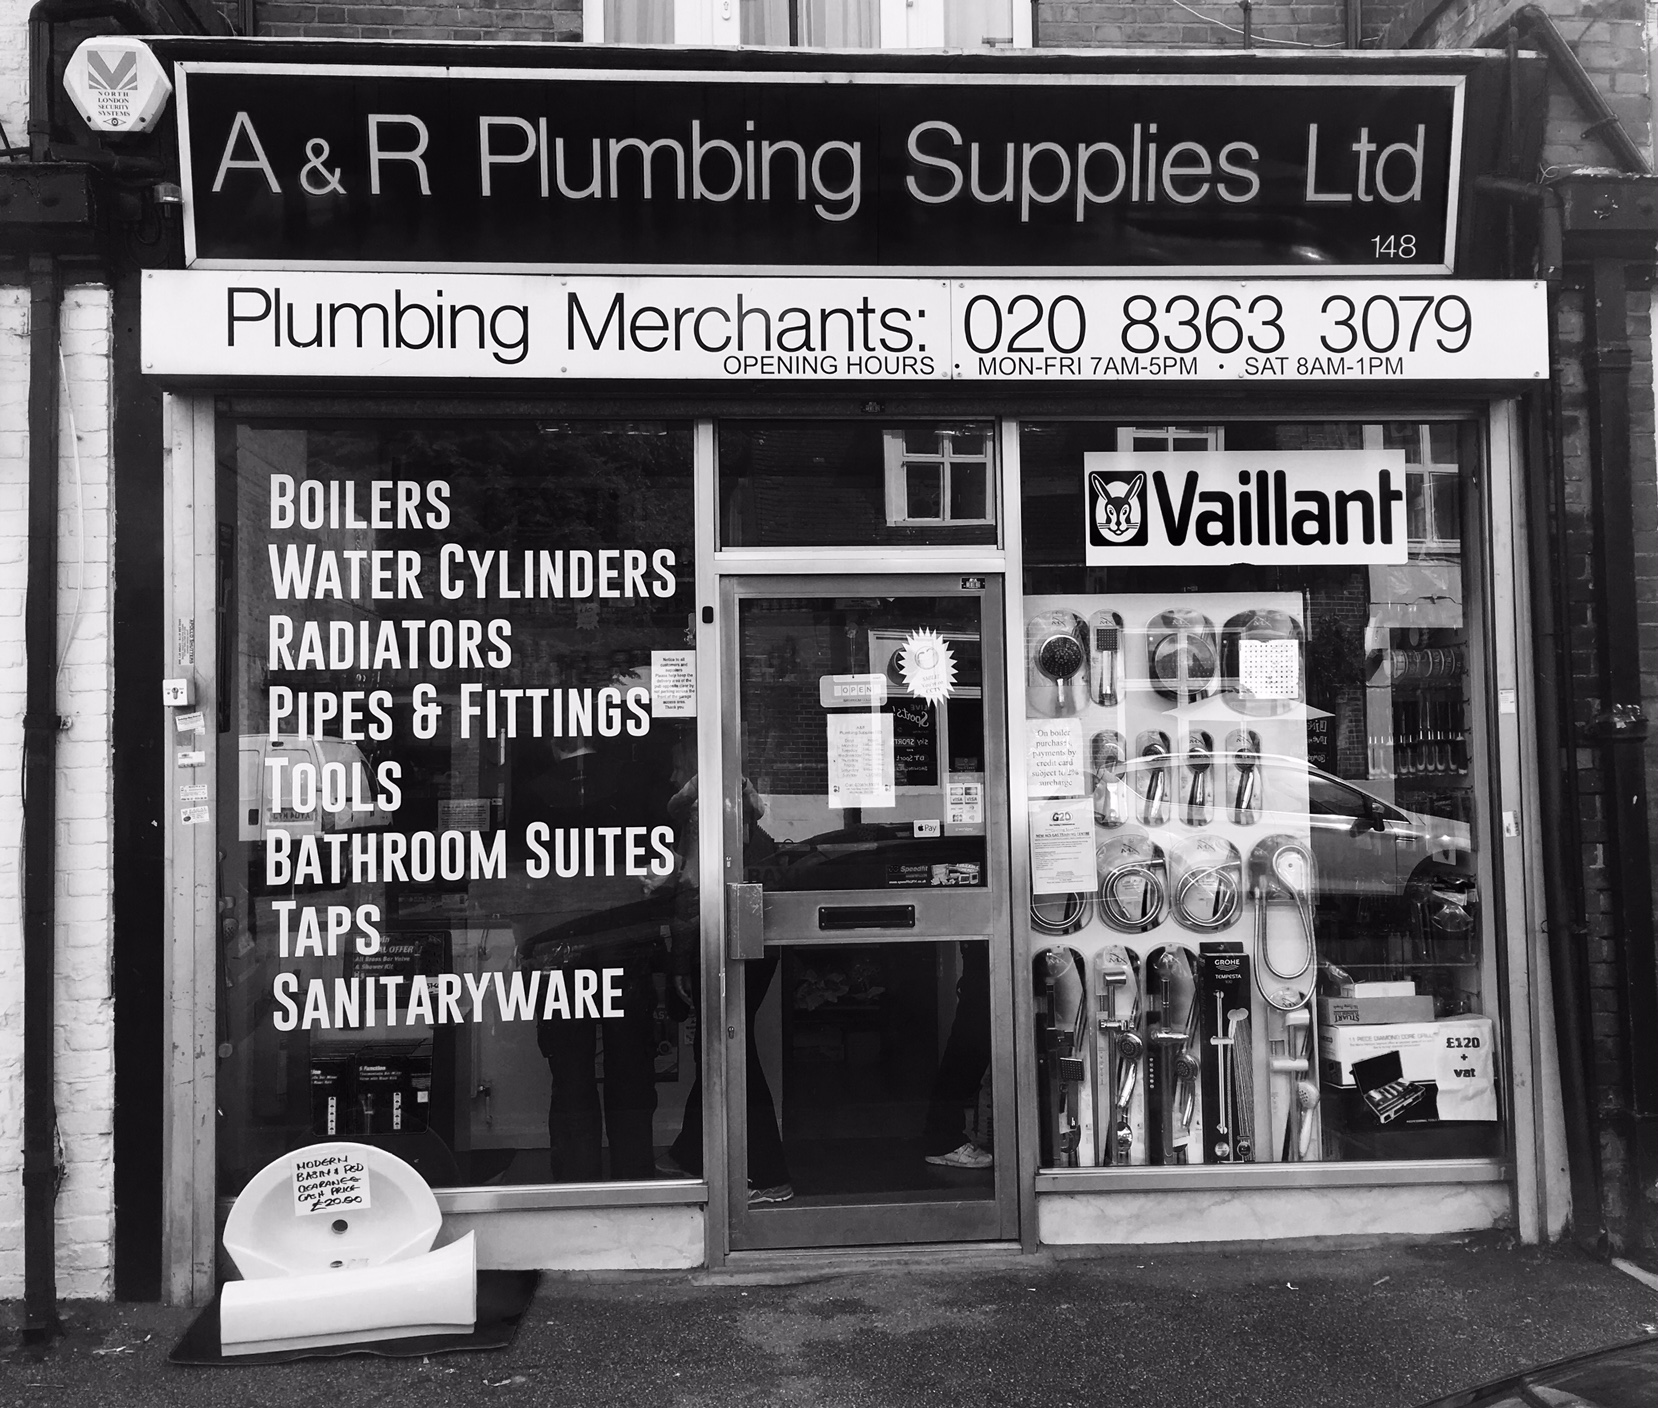 Plumbing Suppliers Near Me Trendy Ho Bath With Plumbing Suppliers Near Me Best Morrison Logo